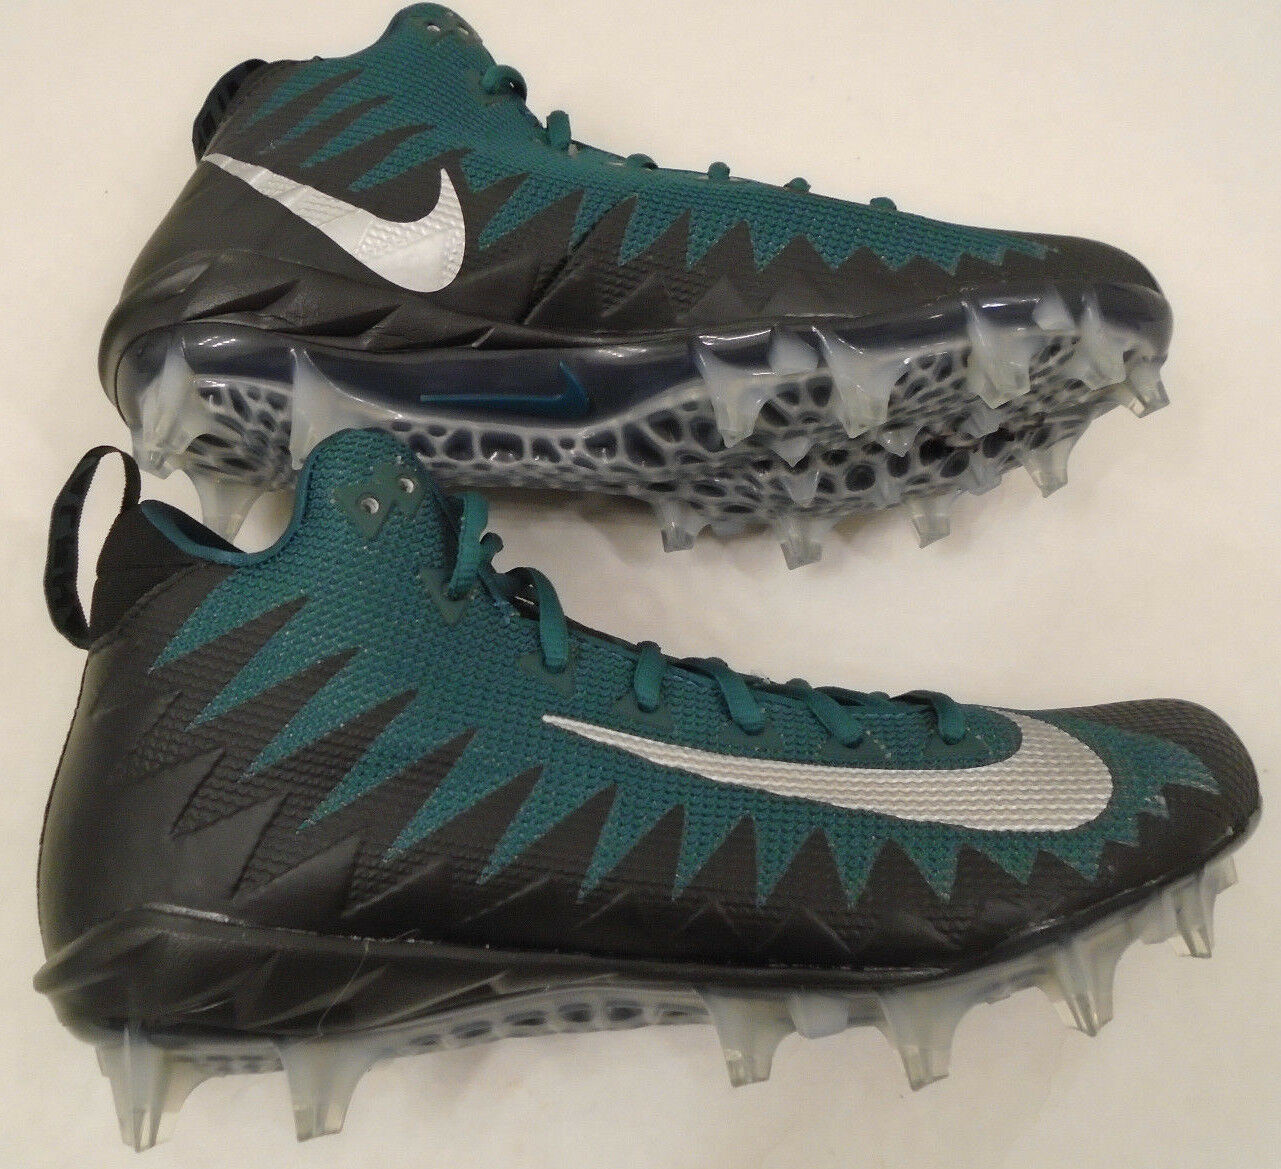 NEW Nike Alpha Menace Mens Size 9 Pro Mid Football Cleats Blk & Green 915414 024